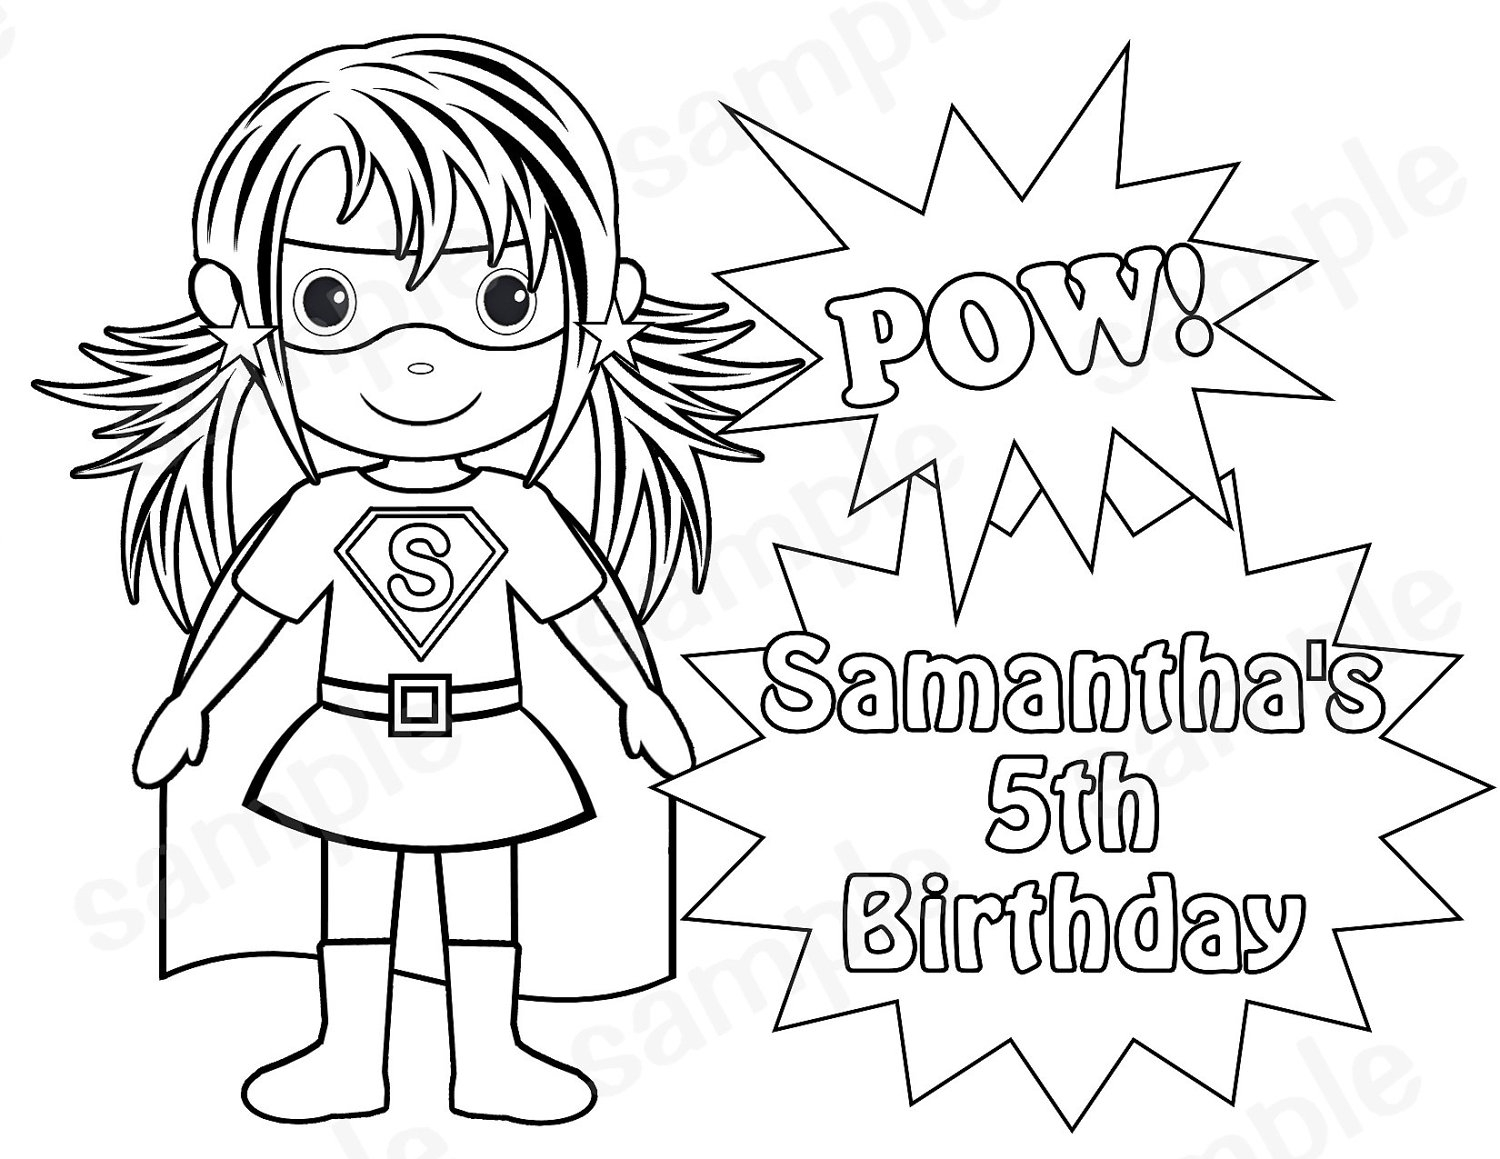 printable superhero coloring pages - best superhero coloring pages printable